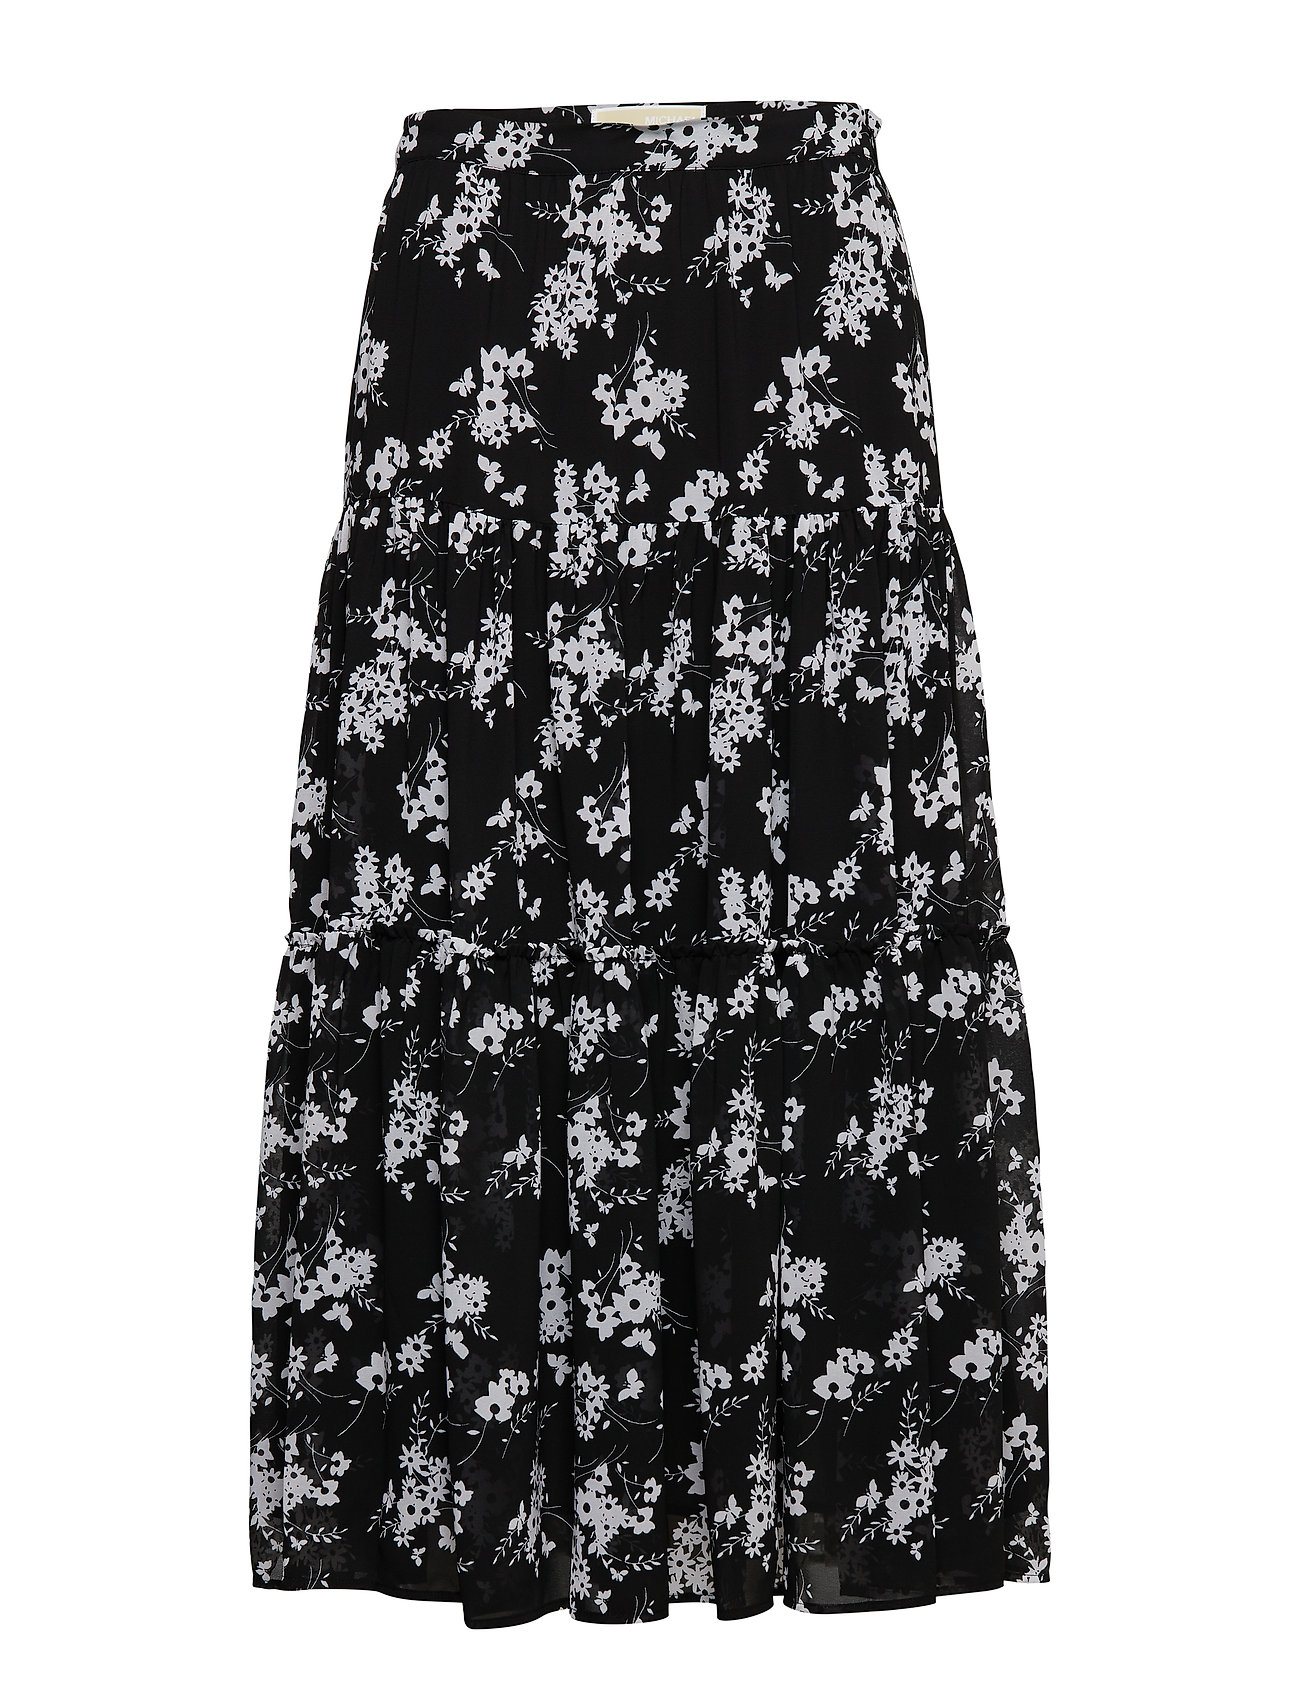 MICHAEL KORS Bold Botanical Skirt Knielanges Kleid Schwarz MICHAEL KORS